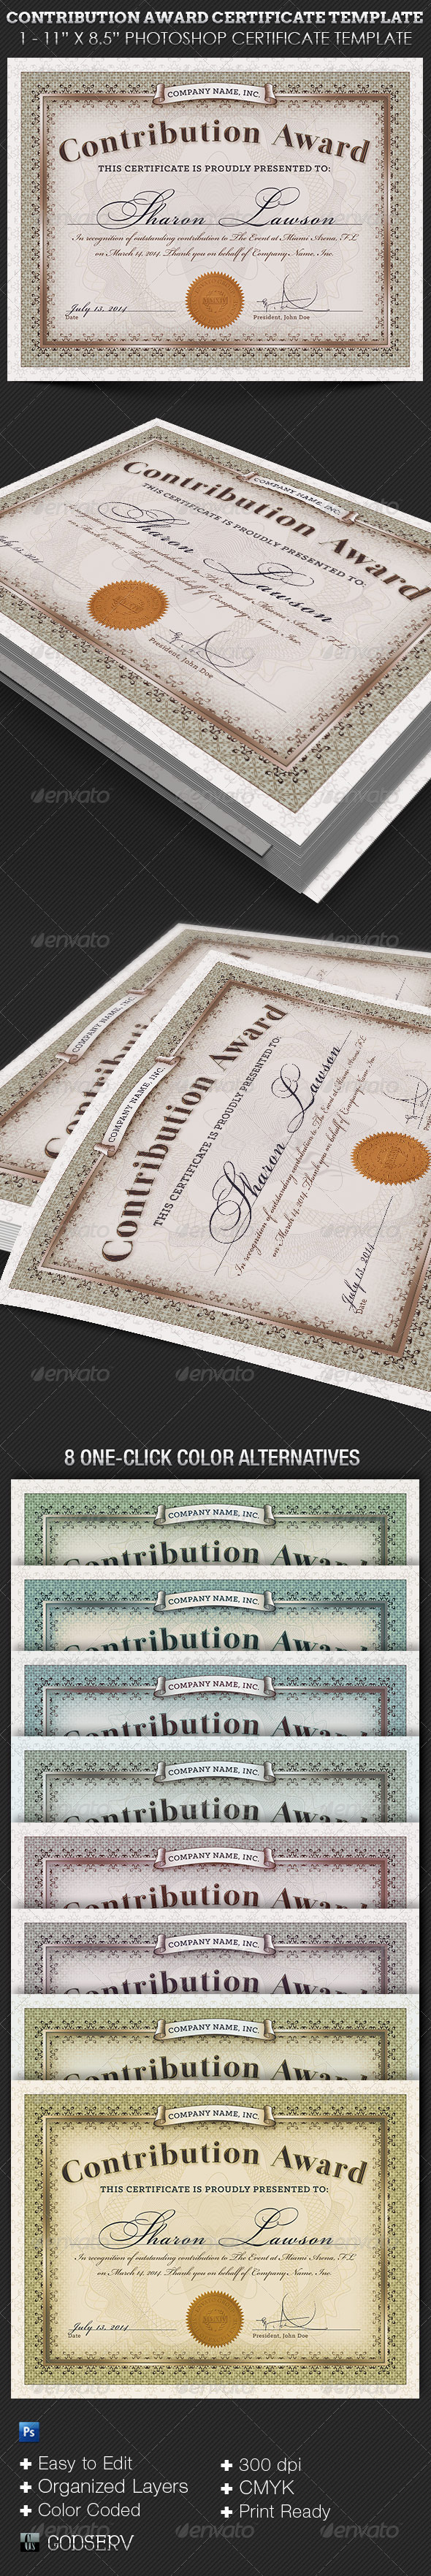 GraphicRiver Contribution Award Certificate Template 6442432